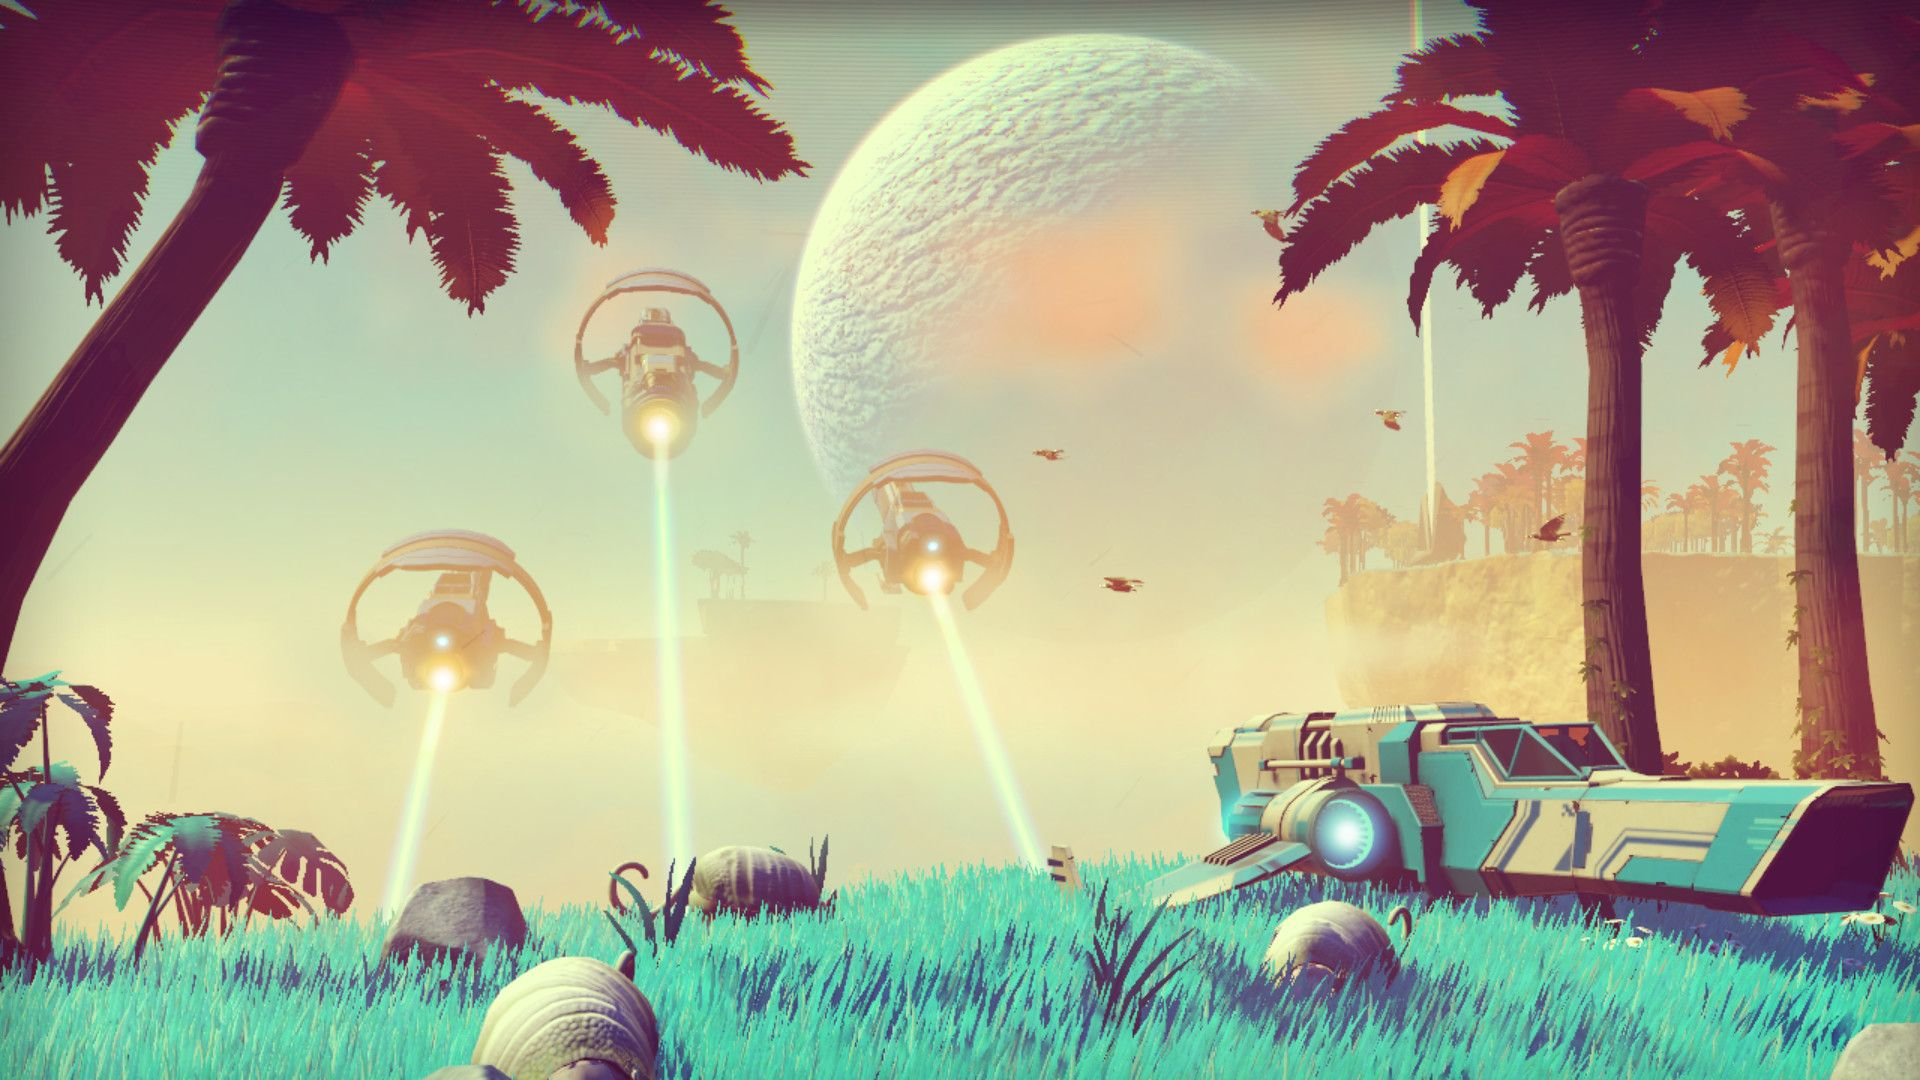 """No Man's Sky"" Delayed to August - Game Needs More Polish"